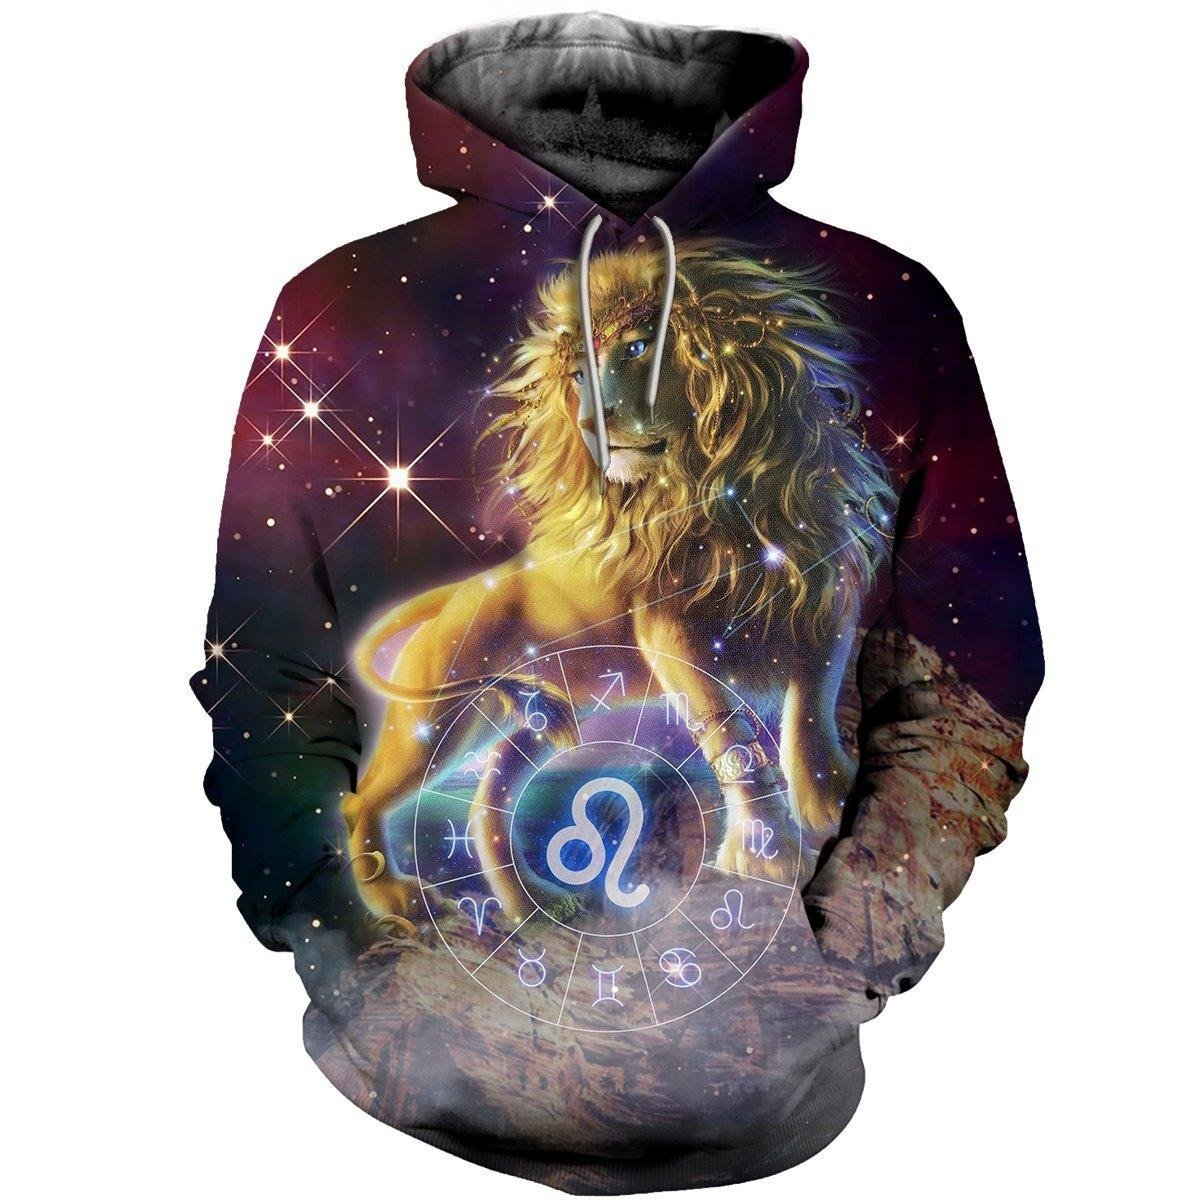 3D ALL OVER PRINTED LEO ZODIAC T SHIRT NTH160867-Apparel-NTH-Hoodie-S-Vibe Cosy™